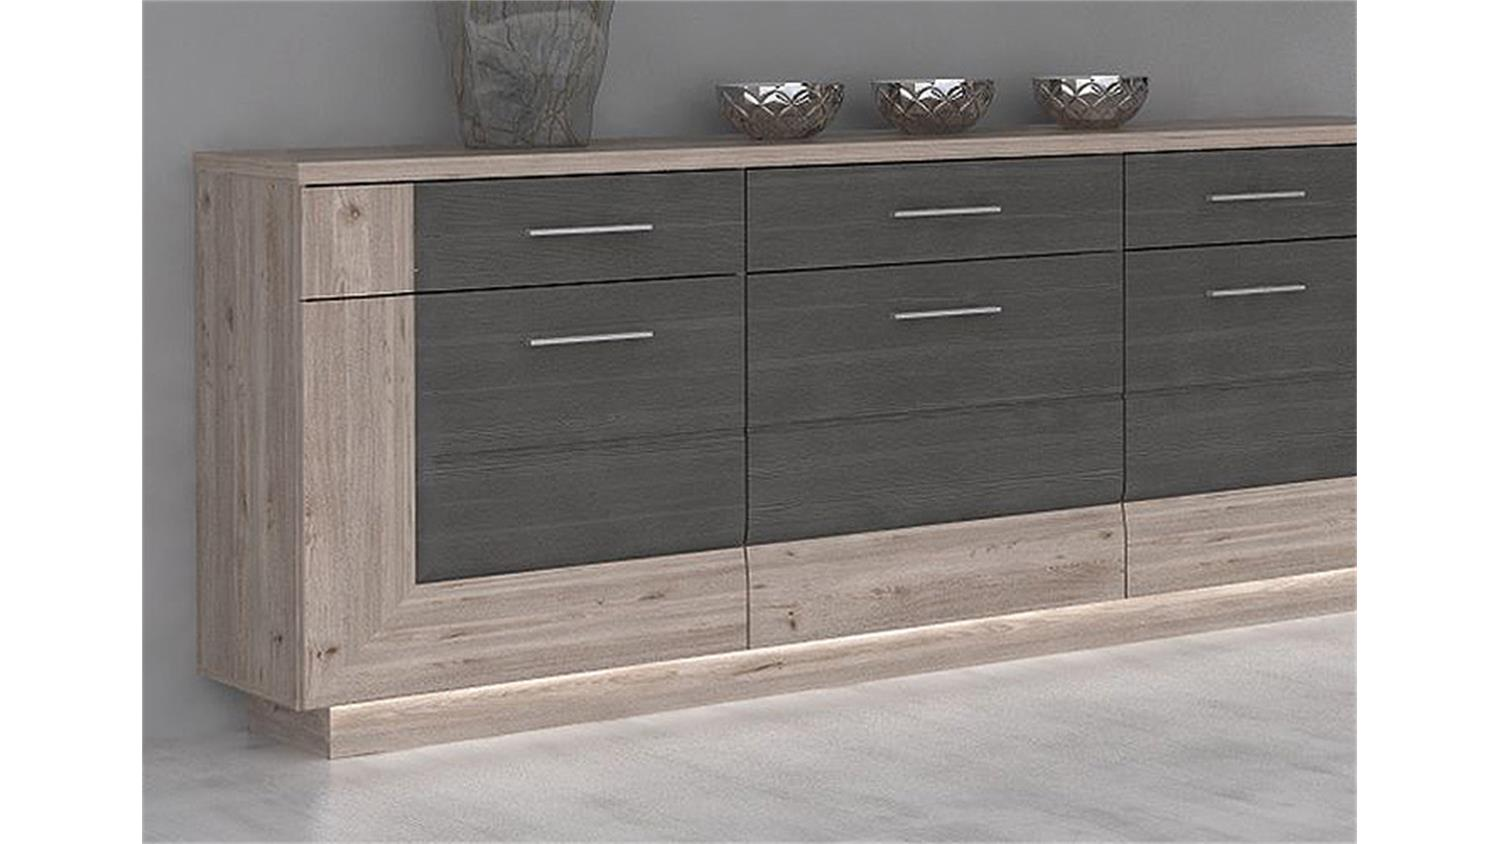 sideboard stairs kommode nelsoneiche und eiche grau inkl led. Black Bedroom Furniture Sets. Home Design Ideas